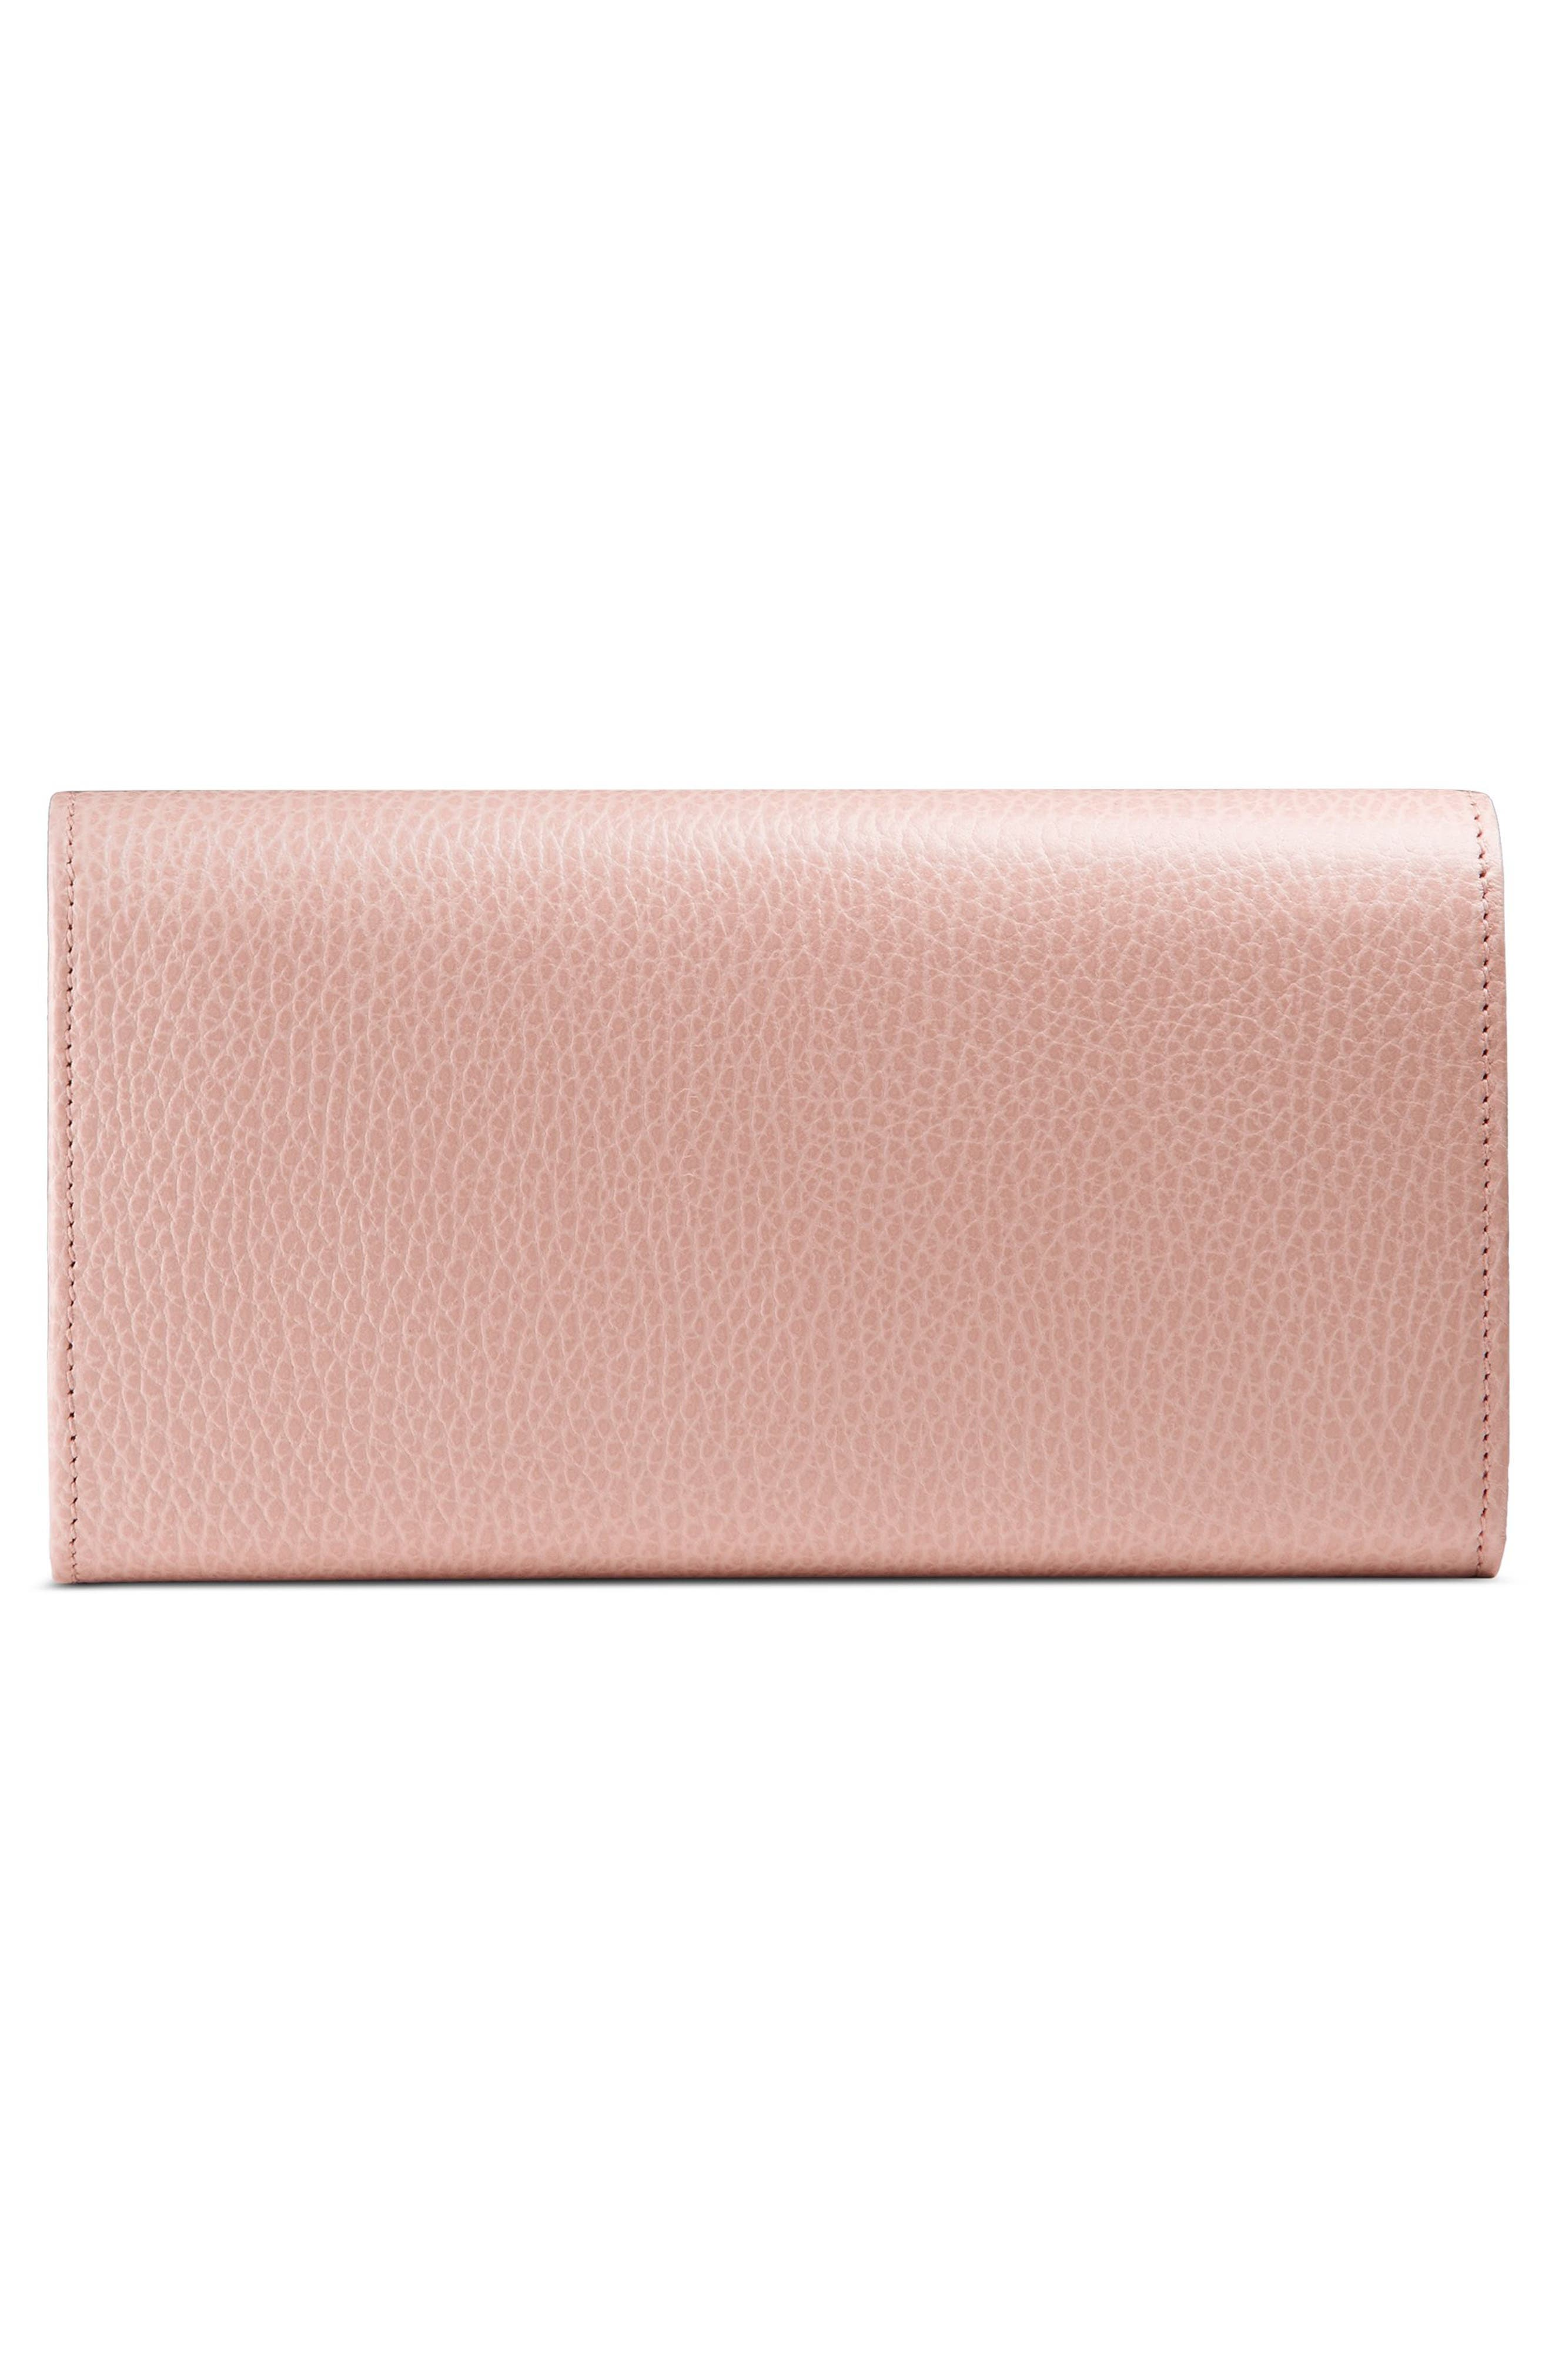 GUCCI, Farfalla Leather Continental Wallet, Alternate thumbnail 3, color, PERFECT PINK/ CRYSTAL